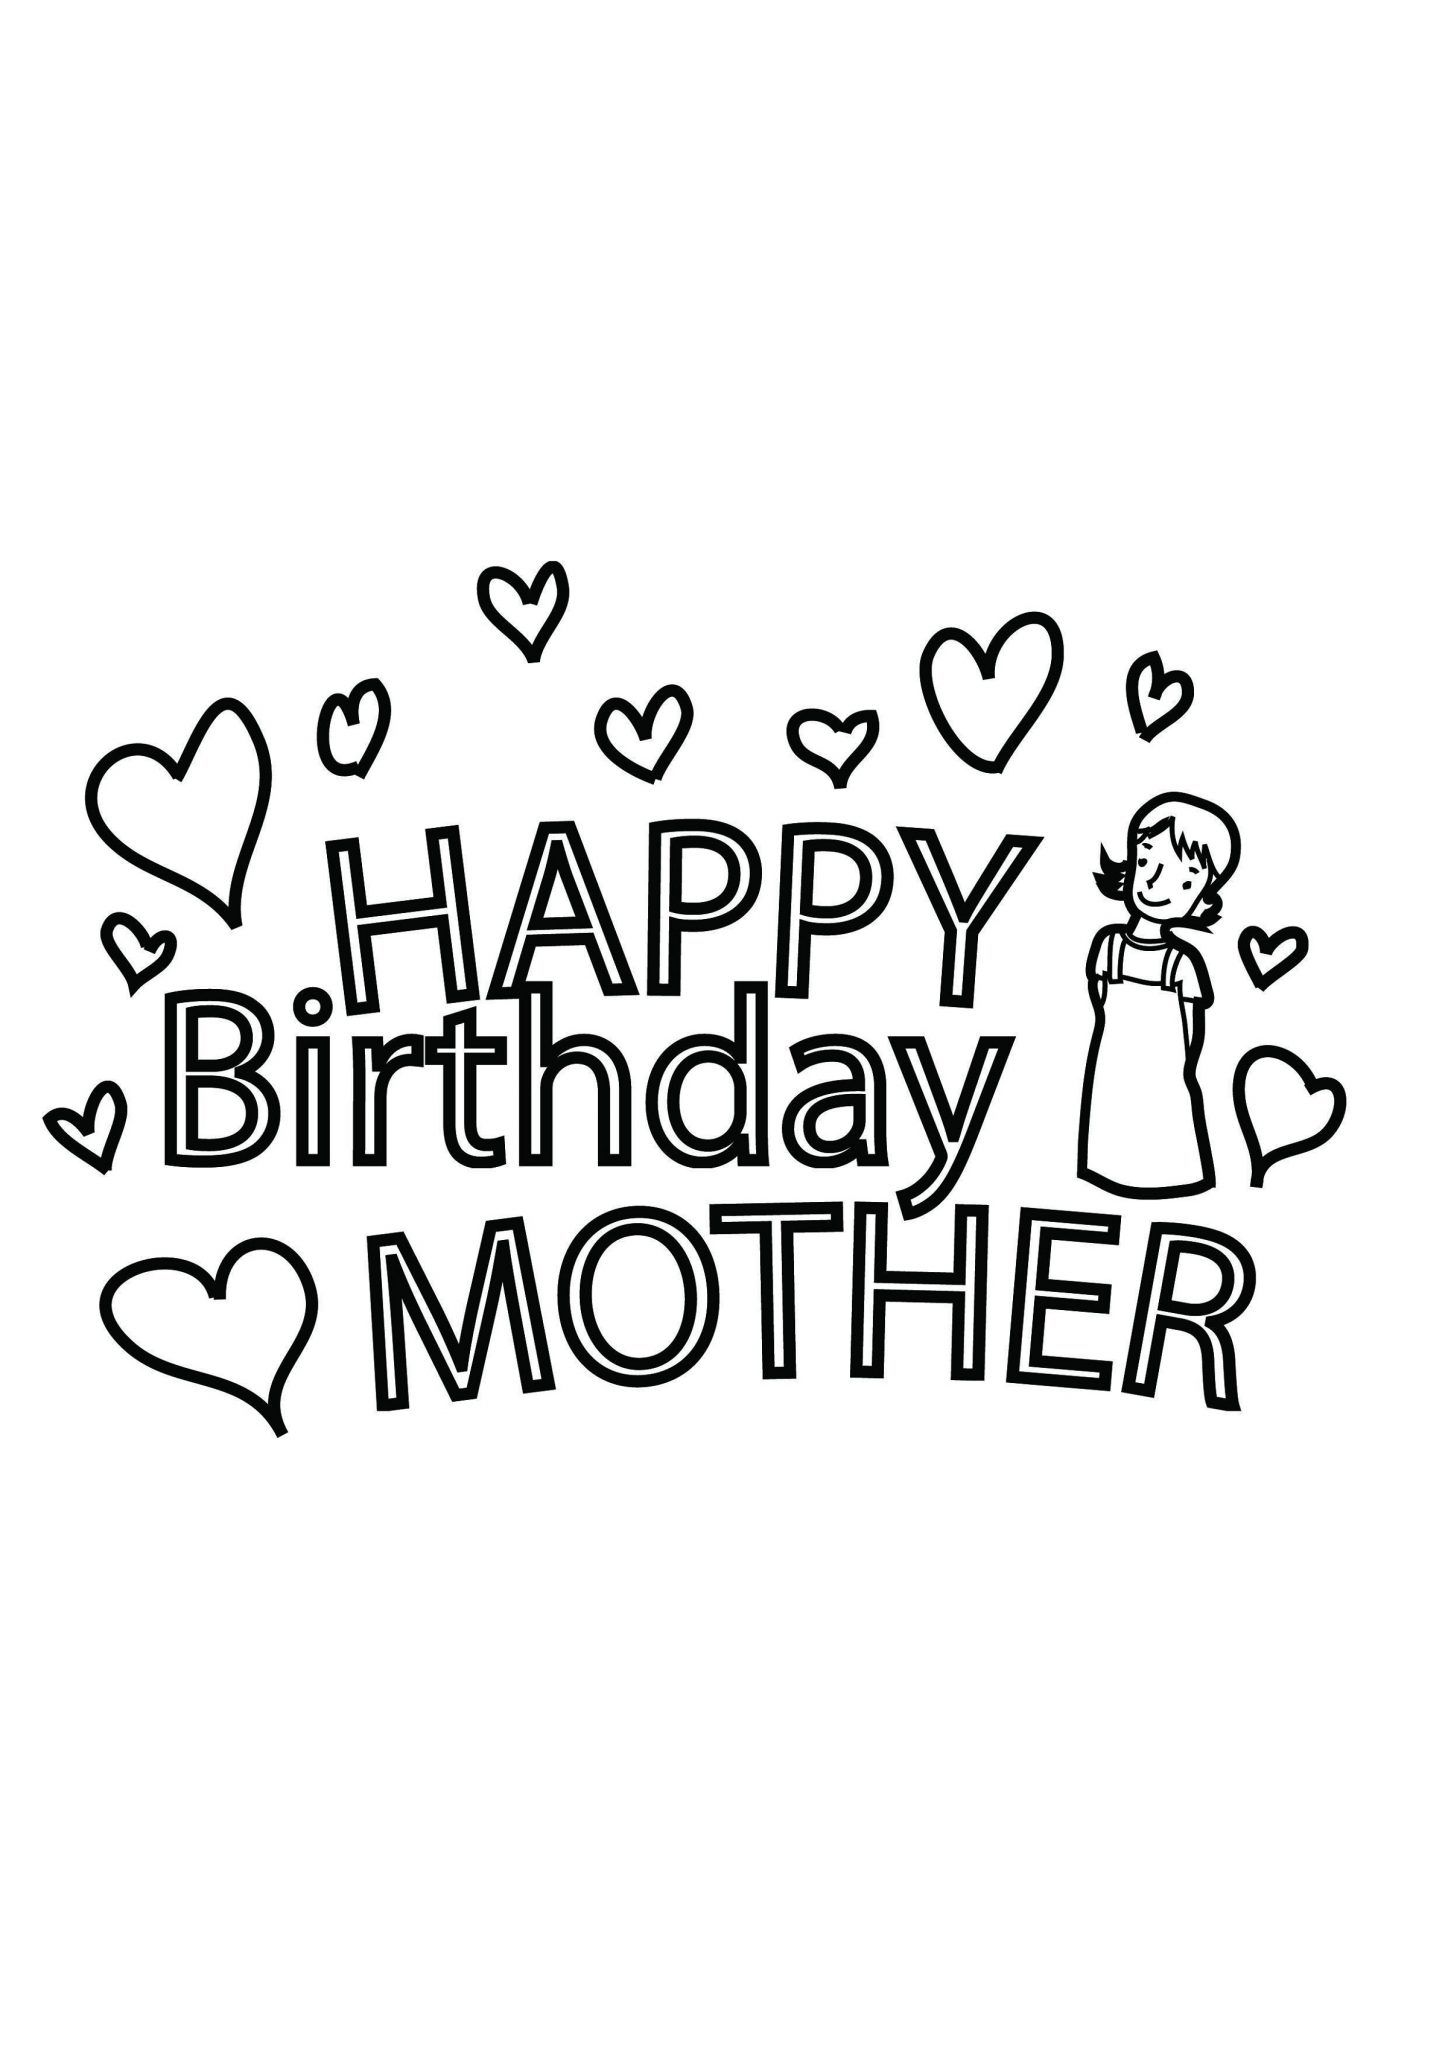 Happy Birthday Mom Coloring Pages In 2020 Happy Birthday Coloring Pages Mom Coloring Pages Happy Birthday Mom